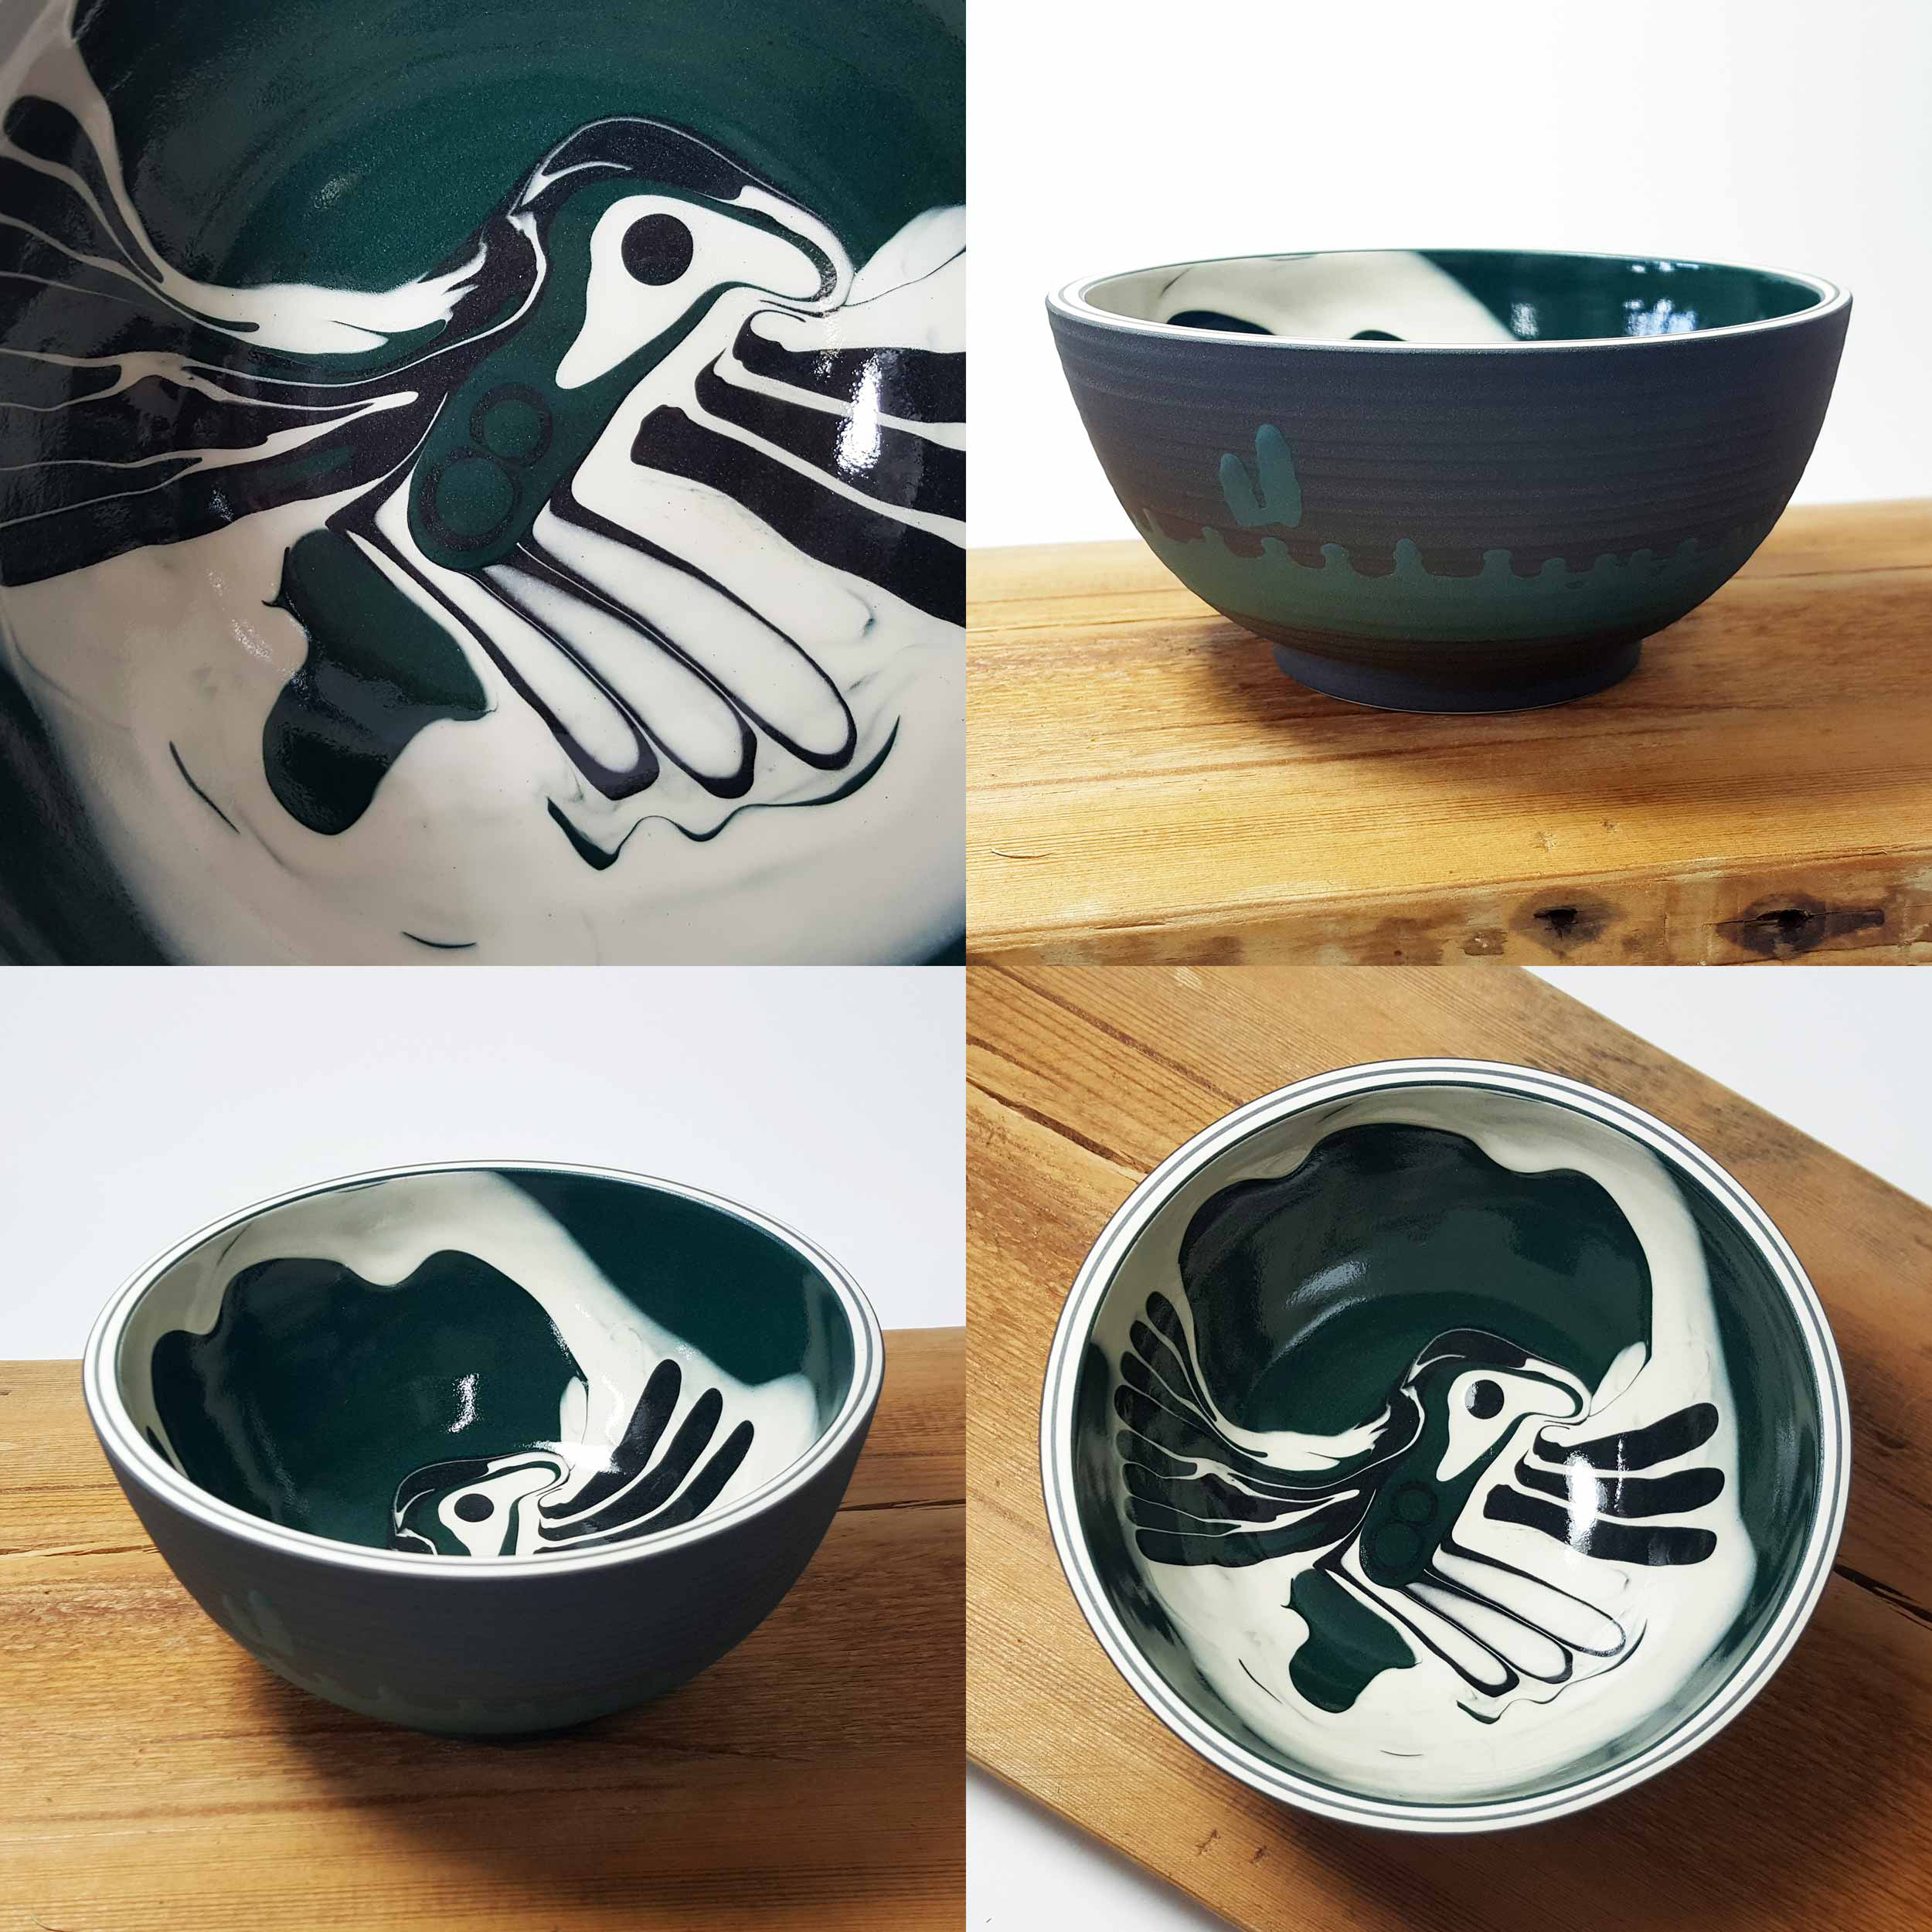 """New Collection of """"Woodland Wonders"""" Ceramics on Show at:   Cameron Contemporary Art  Open Every Day Except Tuesdays 1 Victoria Grove, Second Avenue Hove, East Sussex BN3 2LJ   www.cameroncontemporaryart.com"""